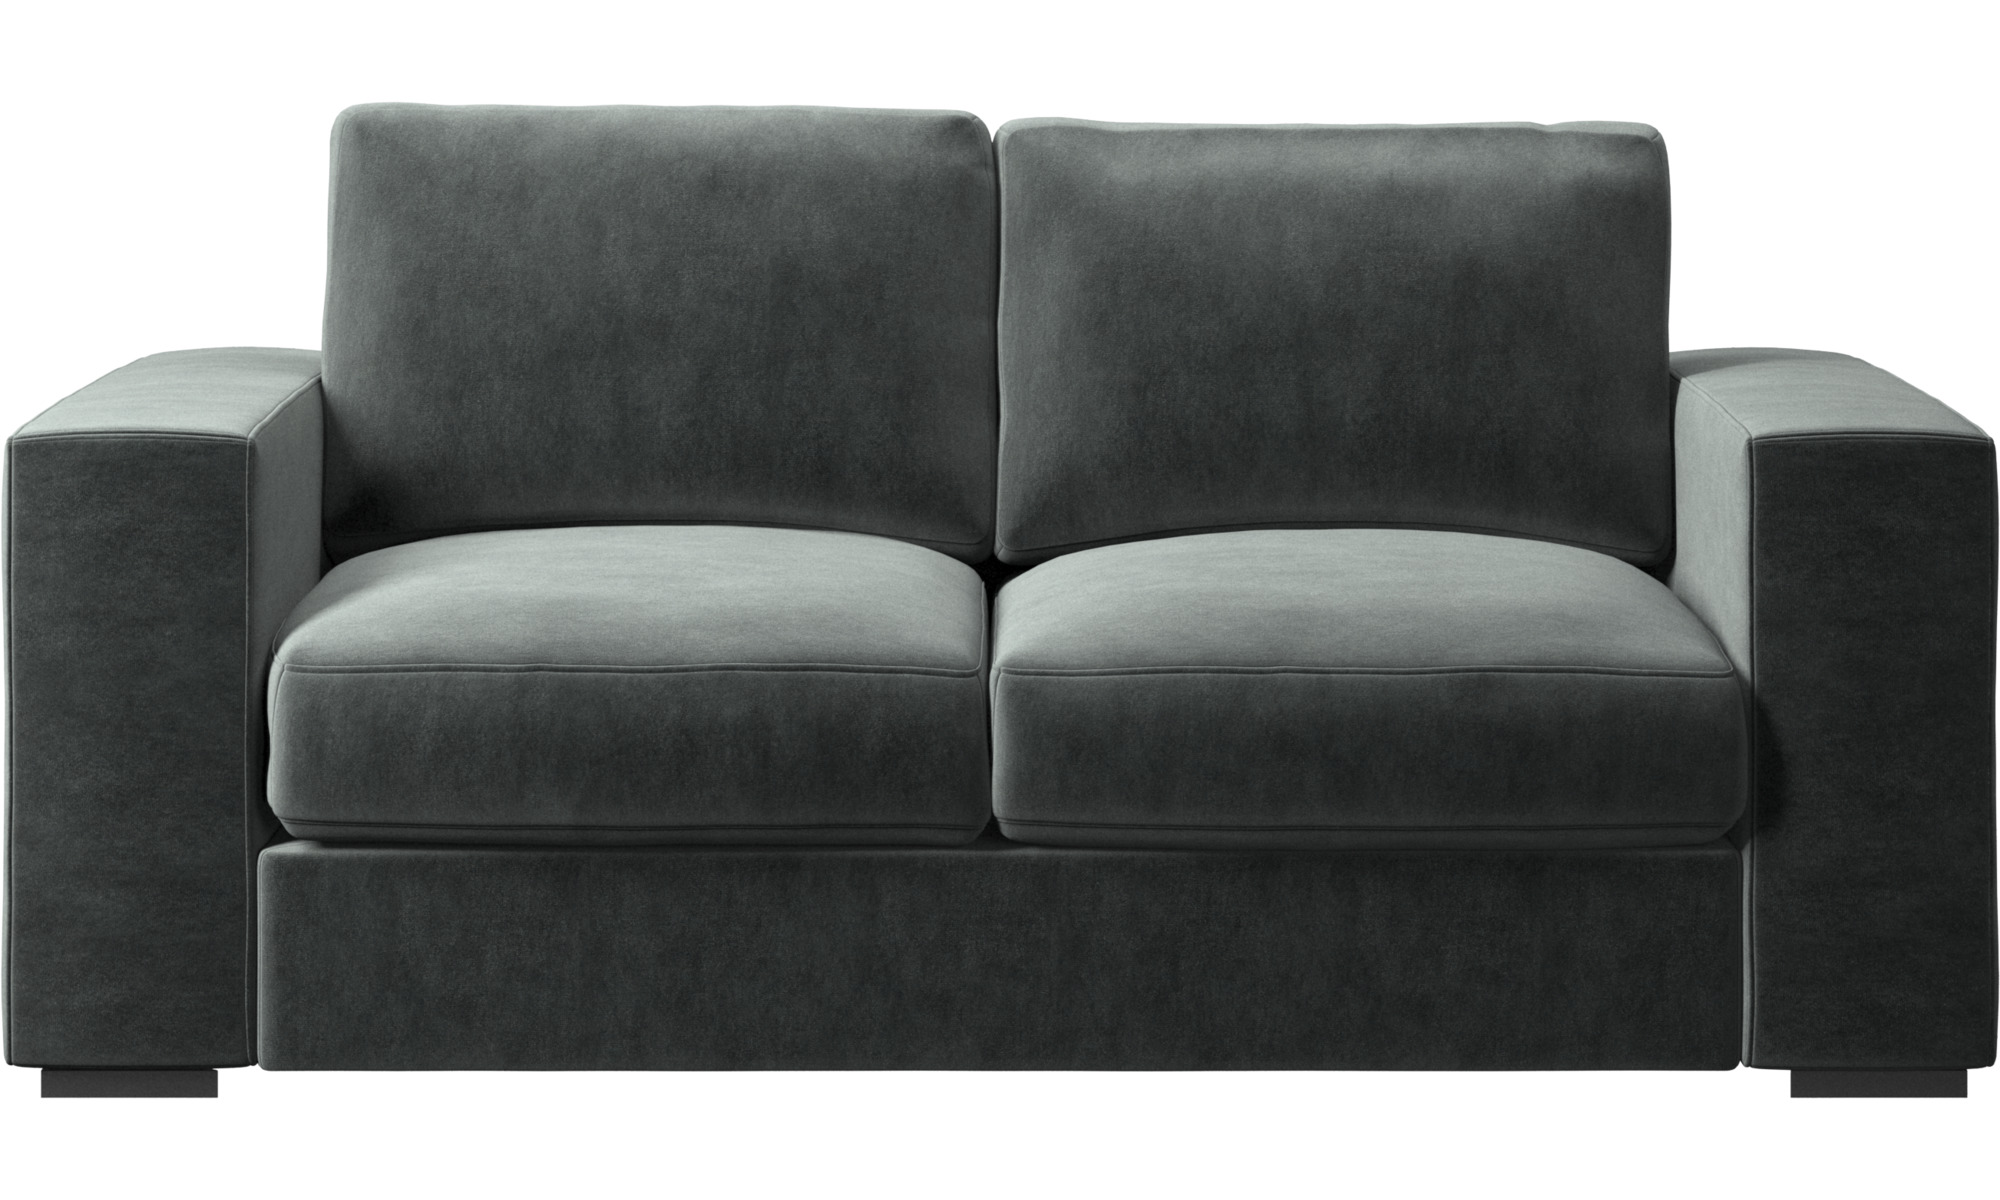 2 personers sofaer cenova sofa boconcept. Black Bedroom Furniture Sets. Home Design Ideas